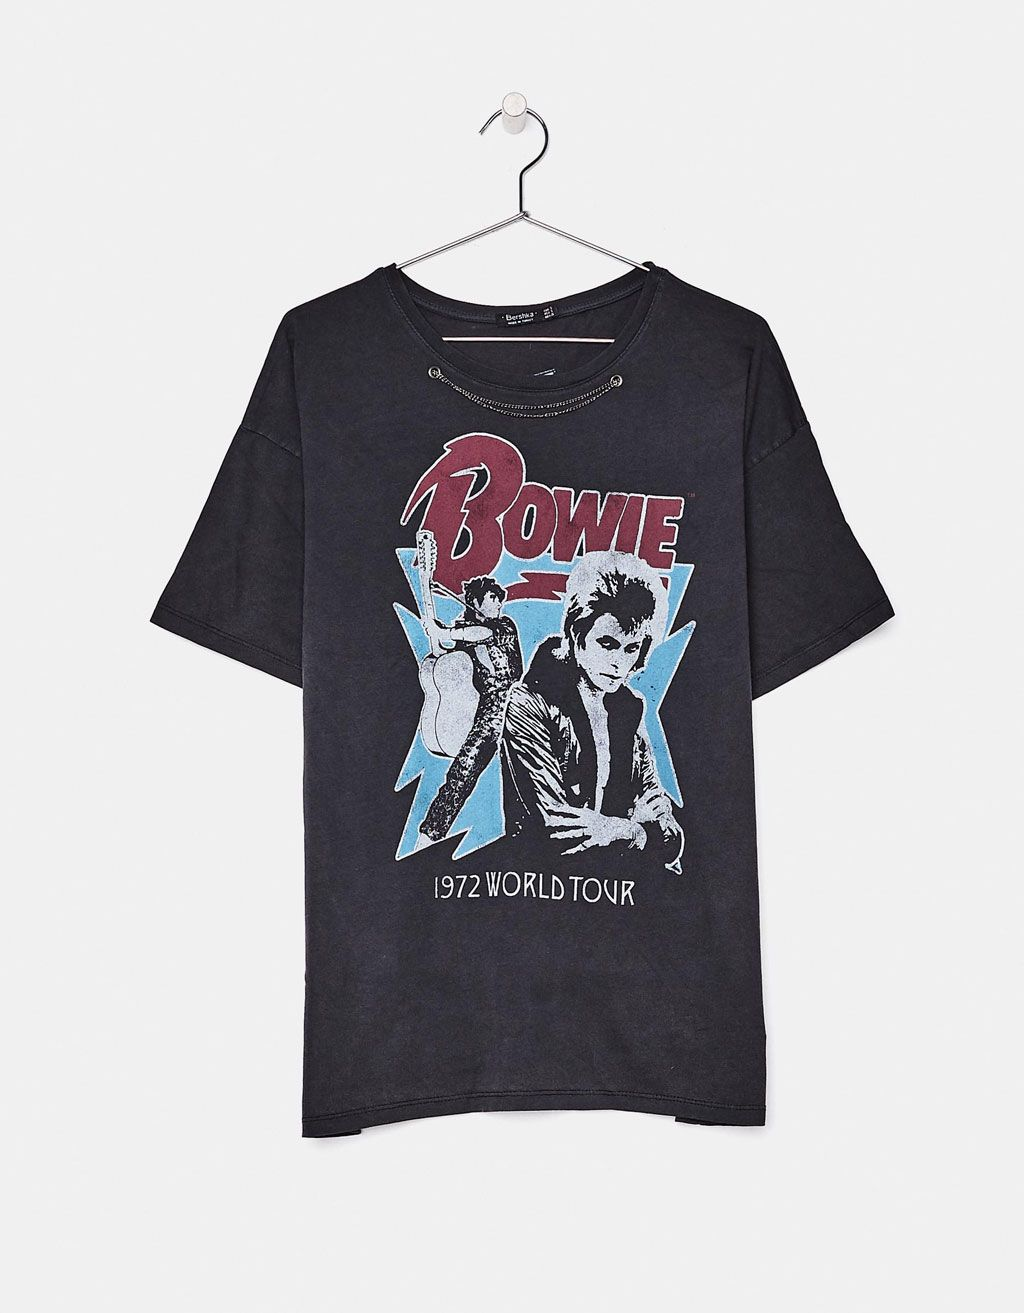 David Bowie T Shirt Discover This And Many More Items In Bershka With New Products Every Week David Bowie T Shirt Clothes Design Vintage Music Tees